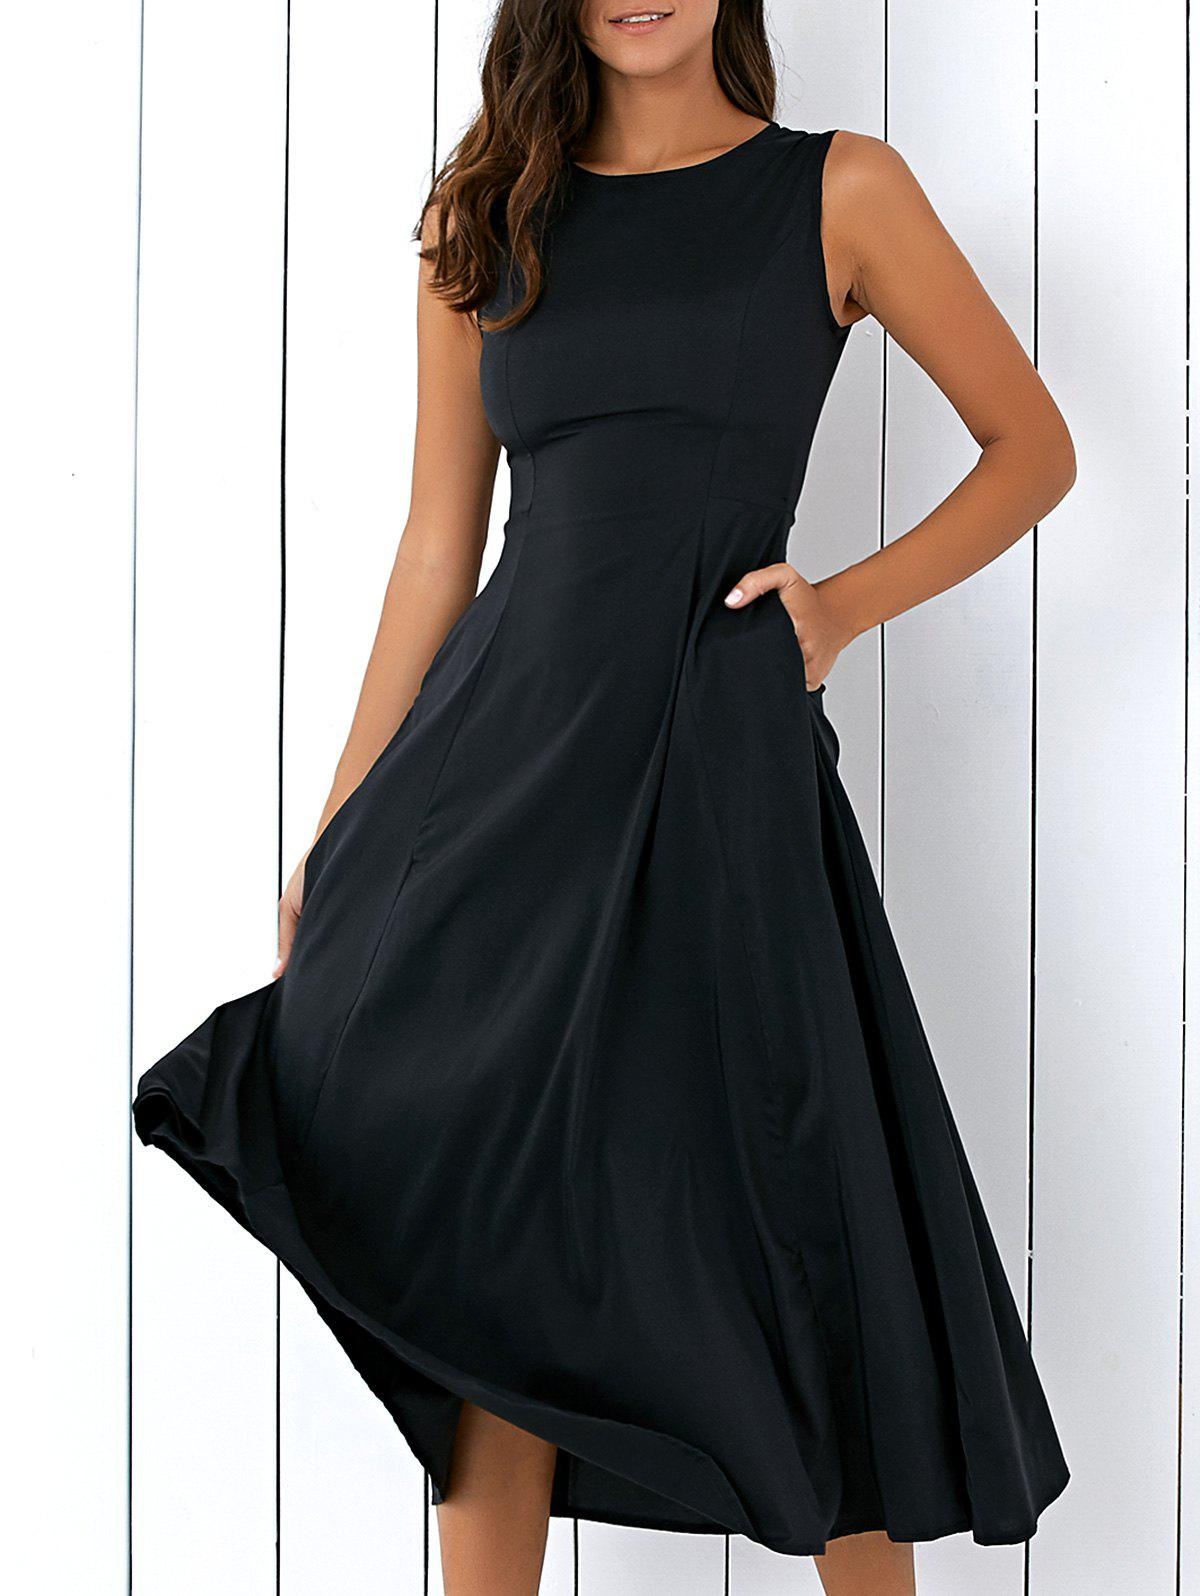 Casual Loose Fitting Tea Length Dress - BLACK L